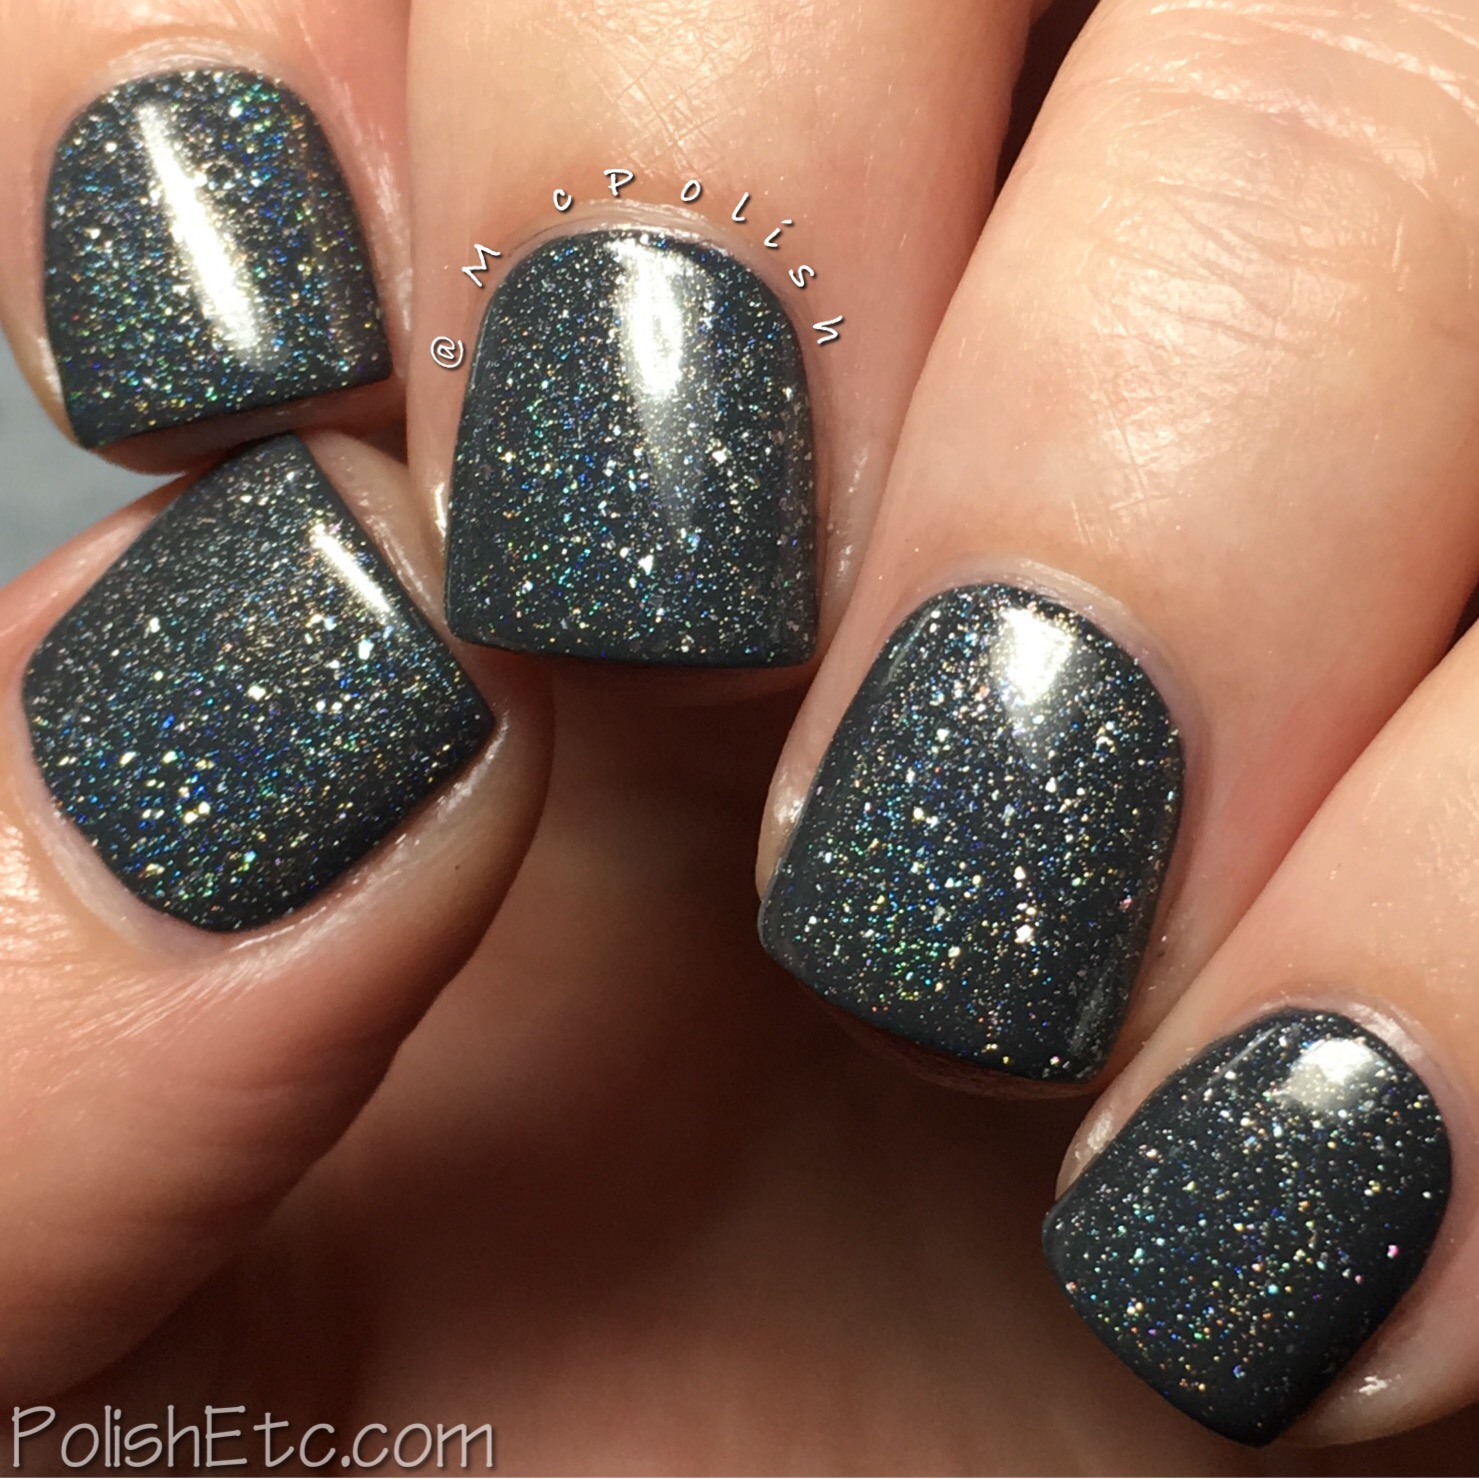 Takko Lacquer - Prisms over Film Noir - McPolish